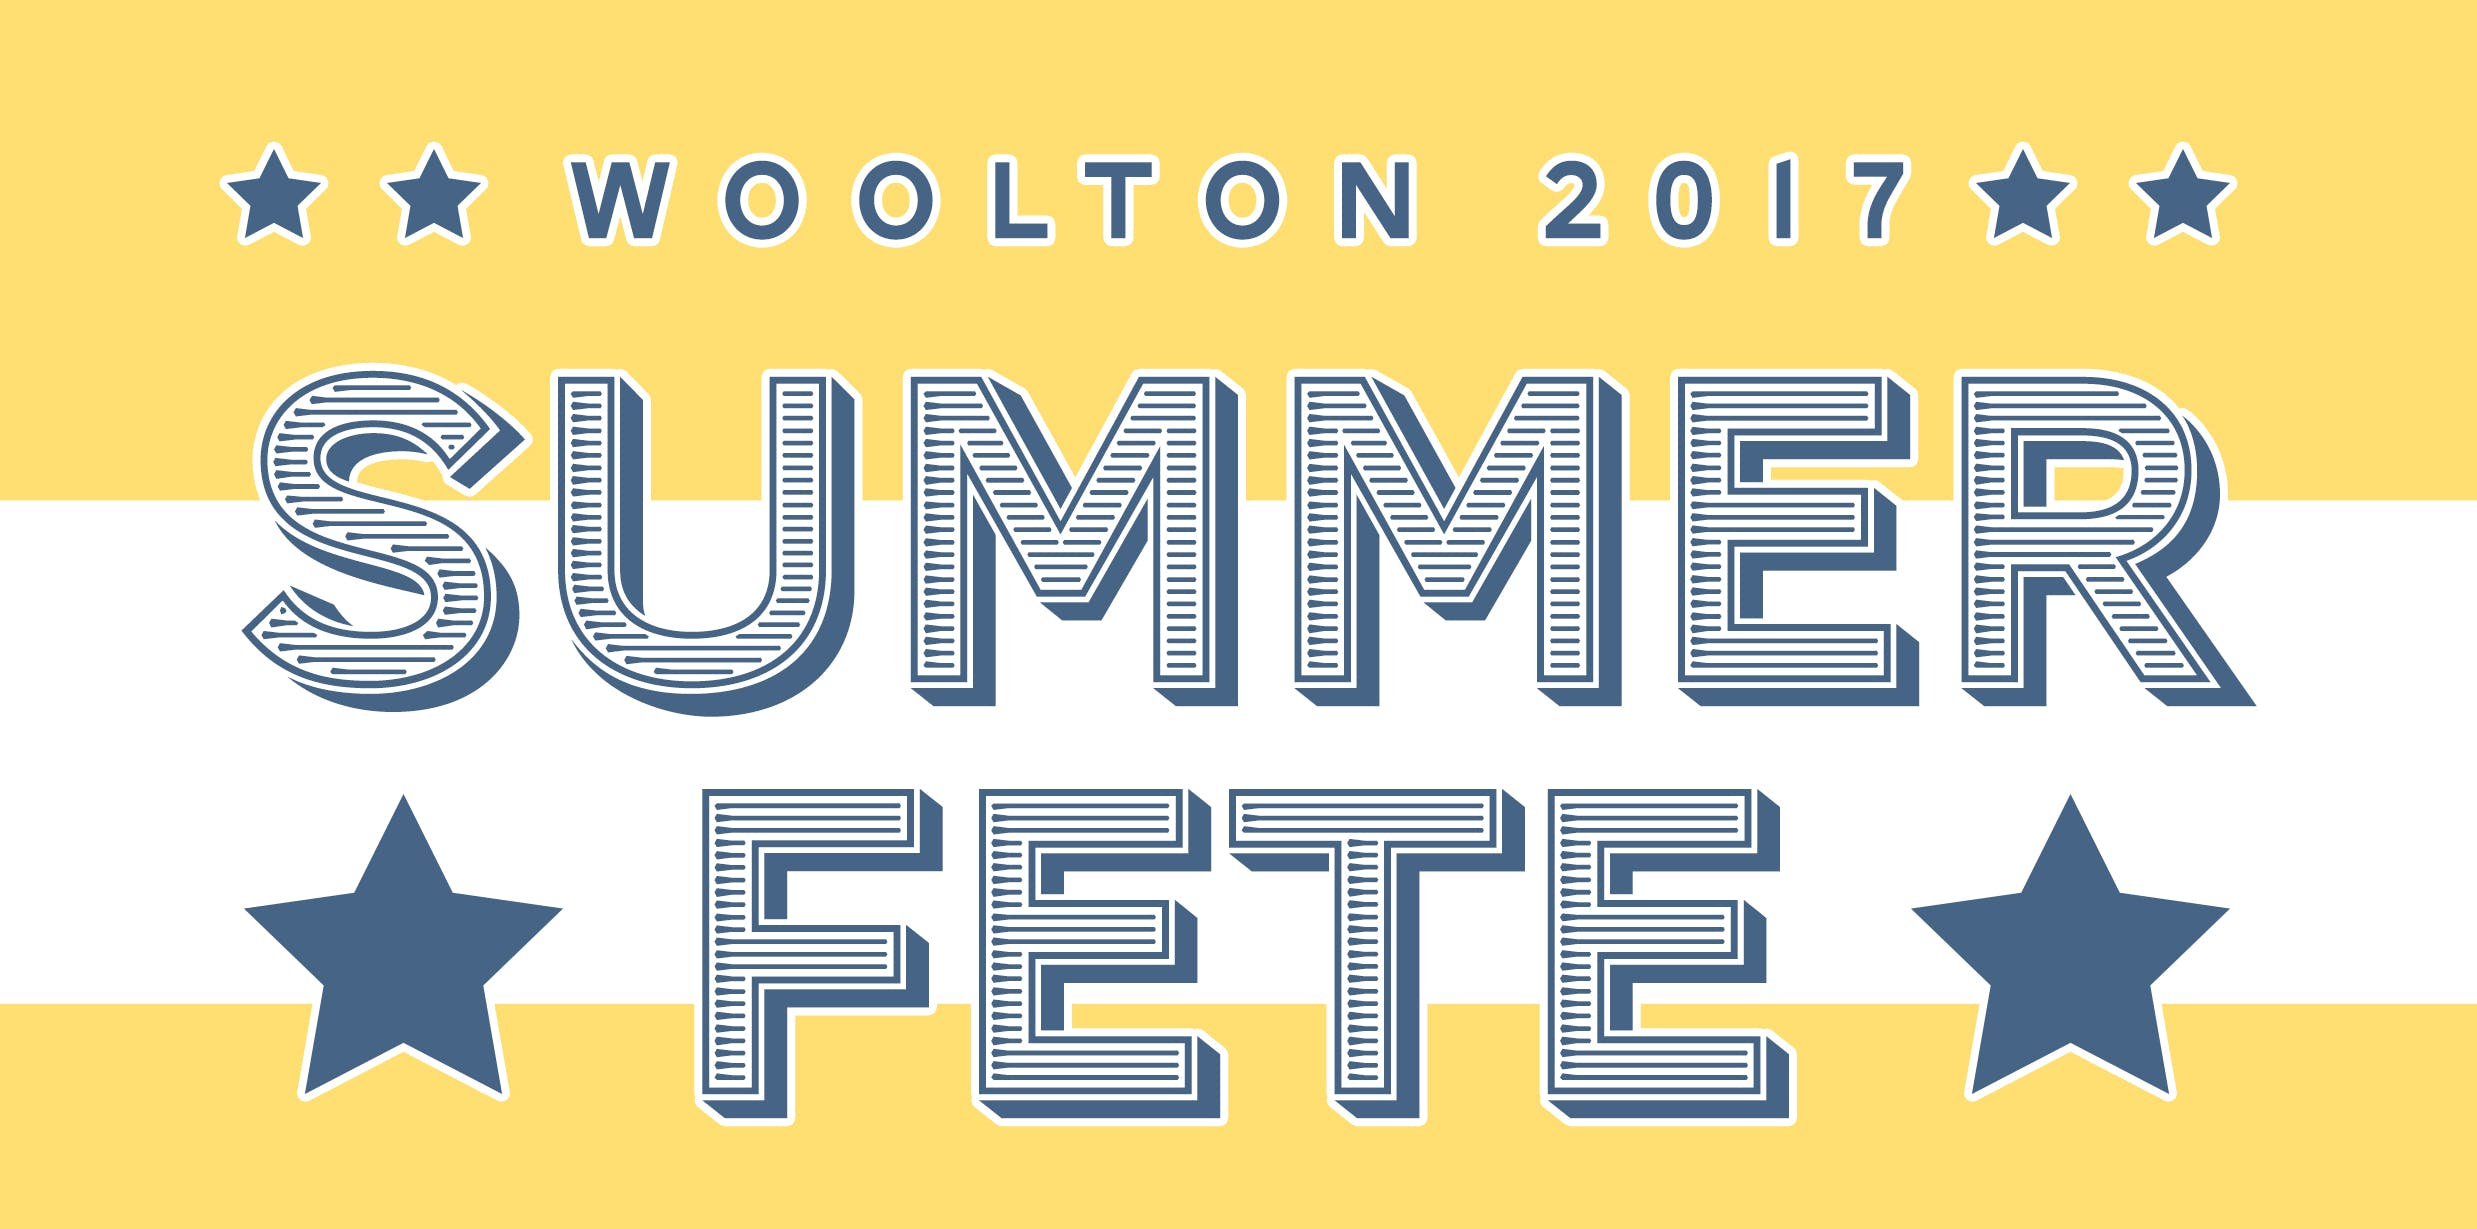 OUR WOOLTON SUMMER FETE & FEAST